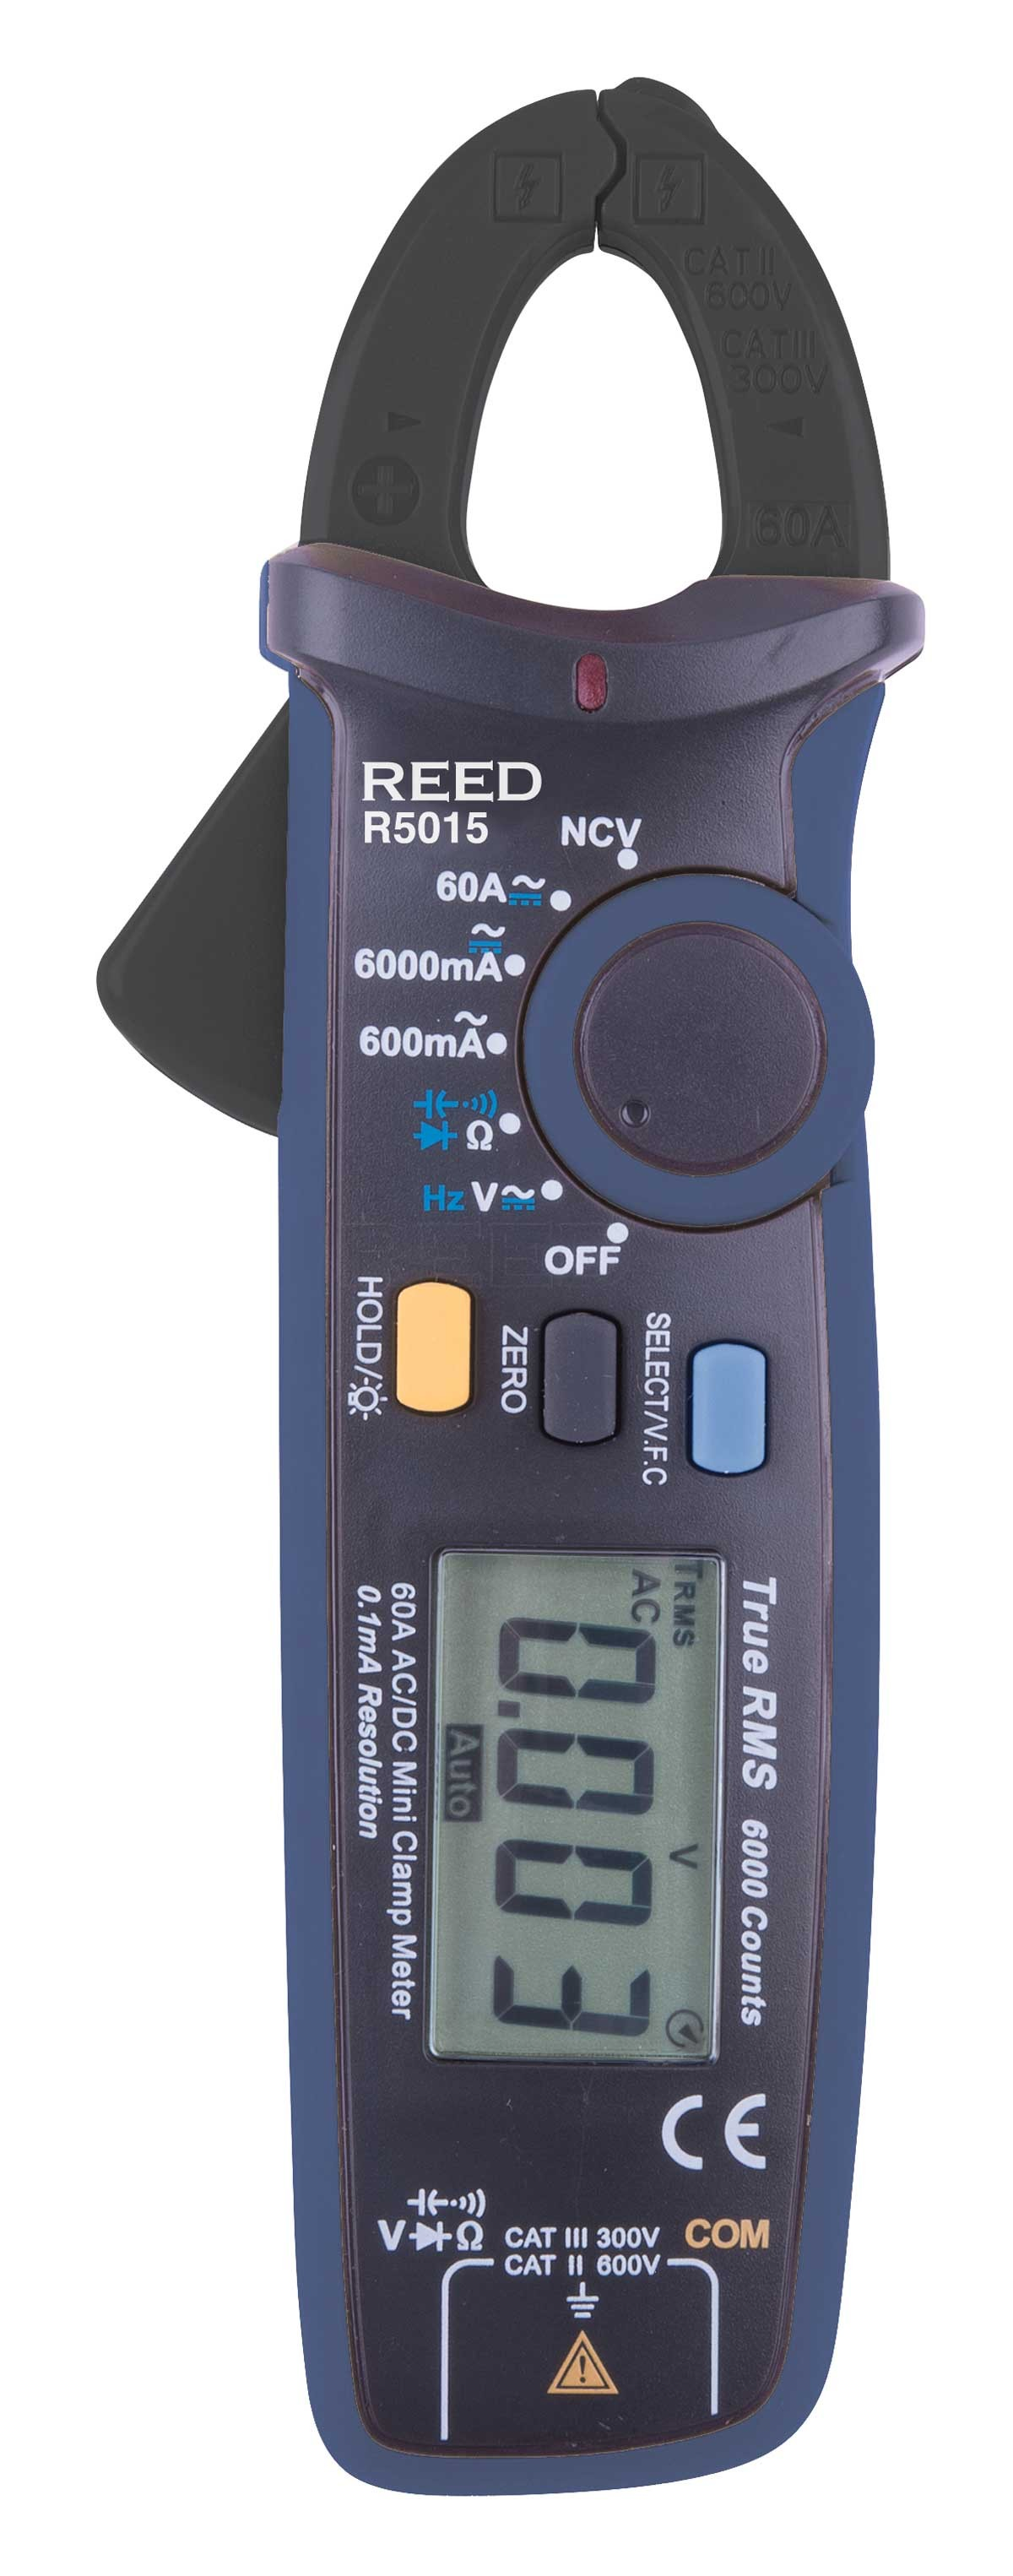 REED R5015 True RMS mA Clamp Meter-